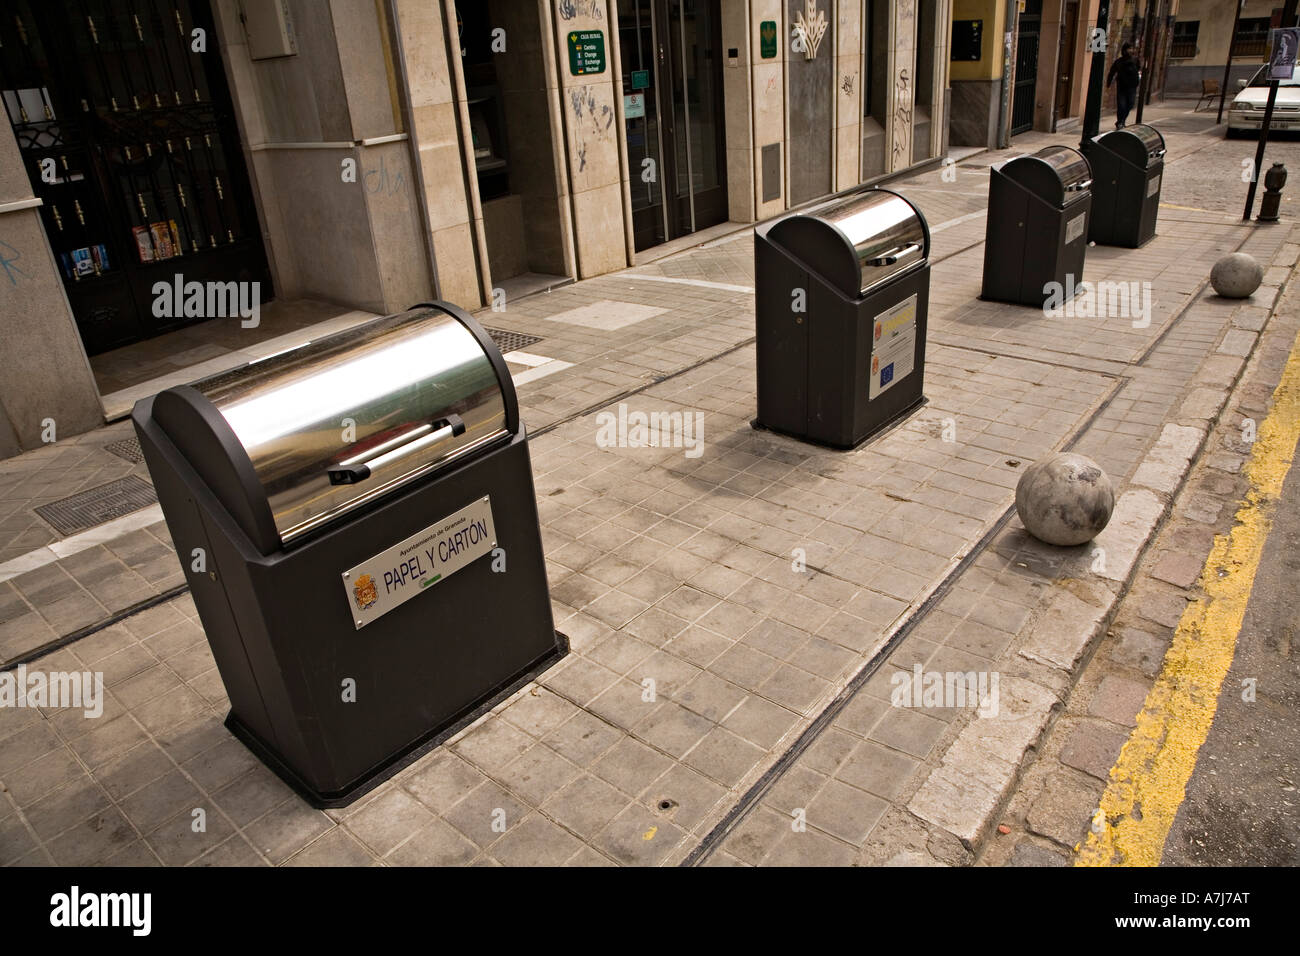 Modern recycling bins in street where rubbish drops into underground